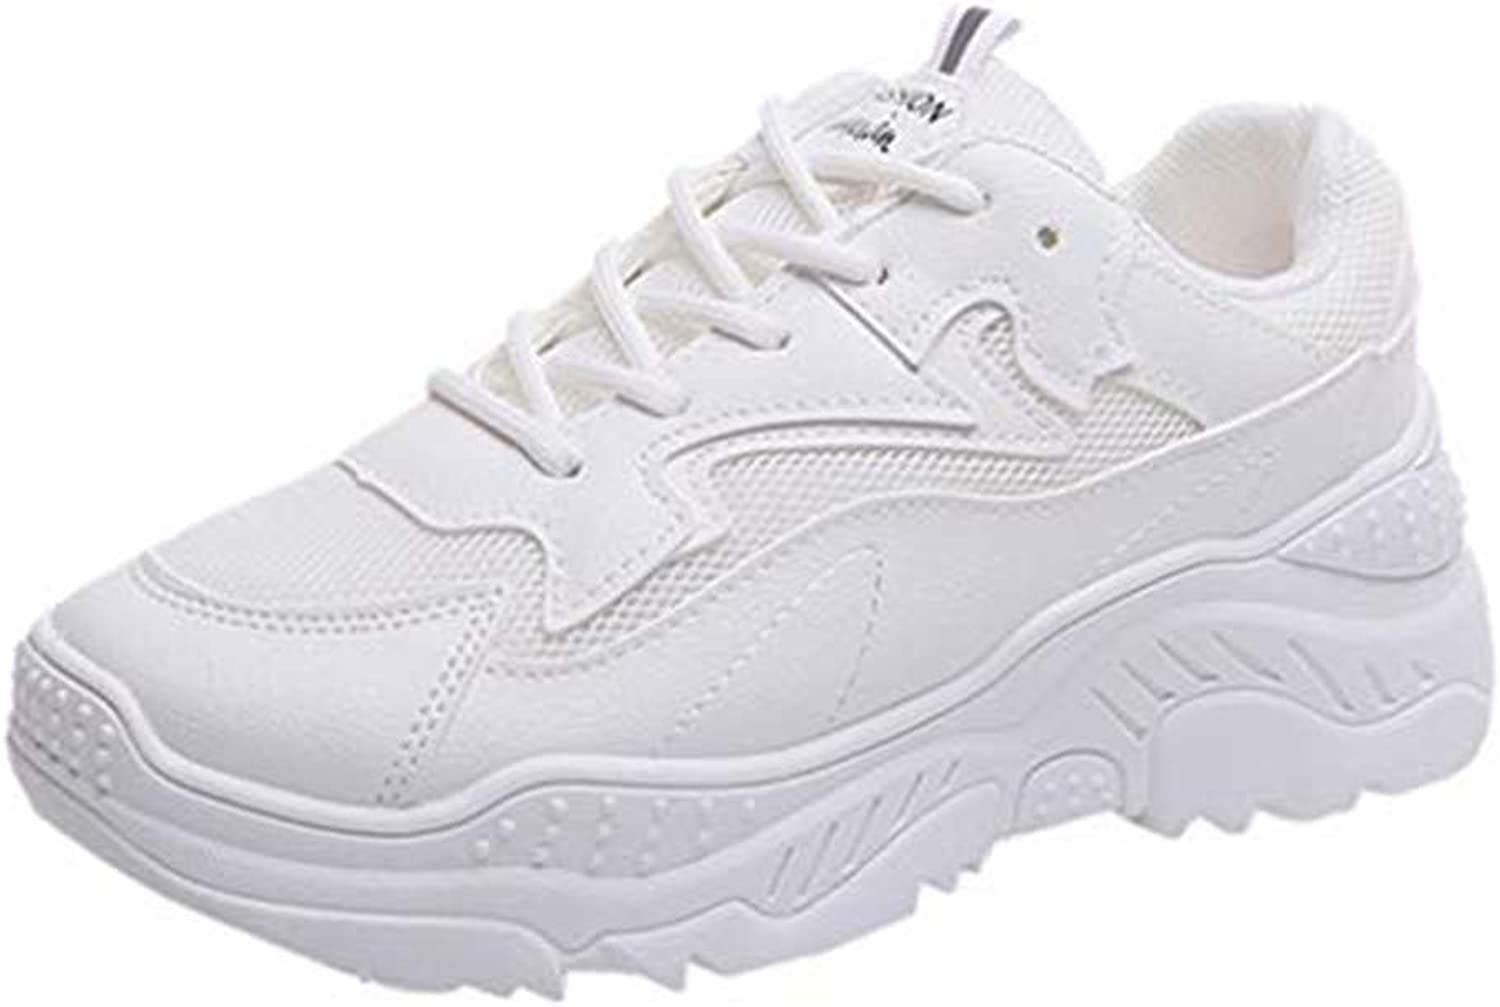 Xinantime Summer Women's White Flat shoes with Thick-Soled Running shoes, Feet, Casual shoes